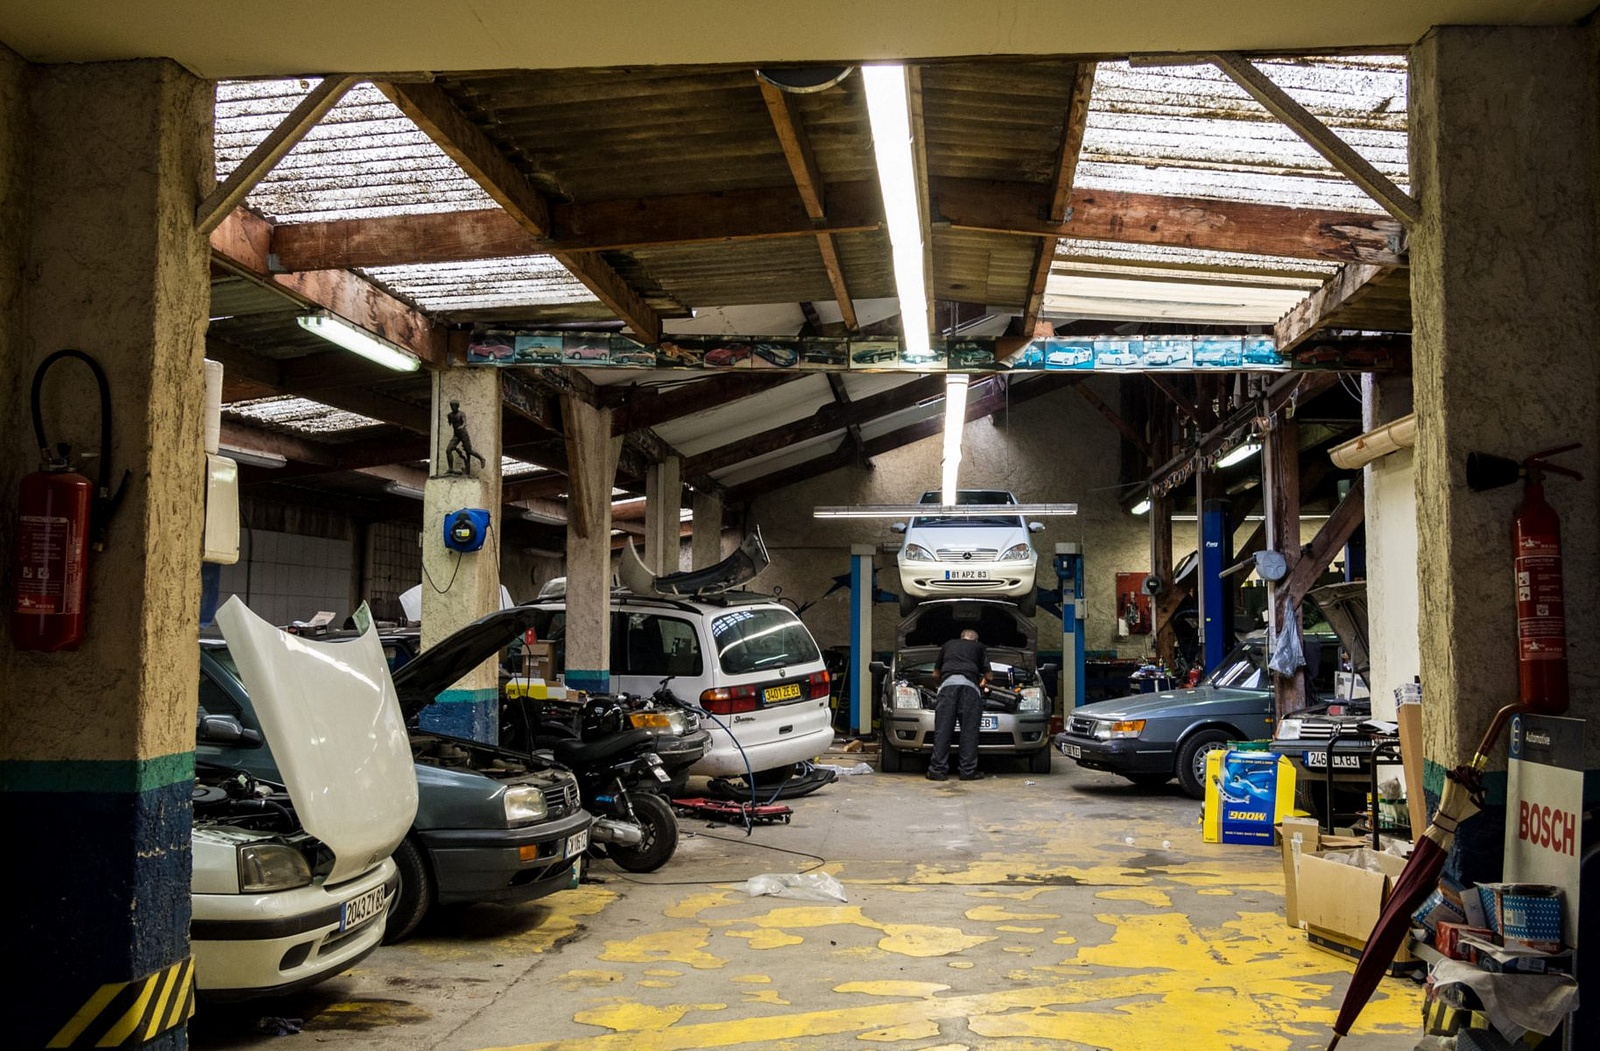 Tips for paying less for car repairs